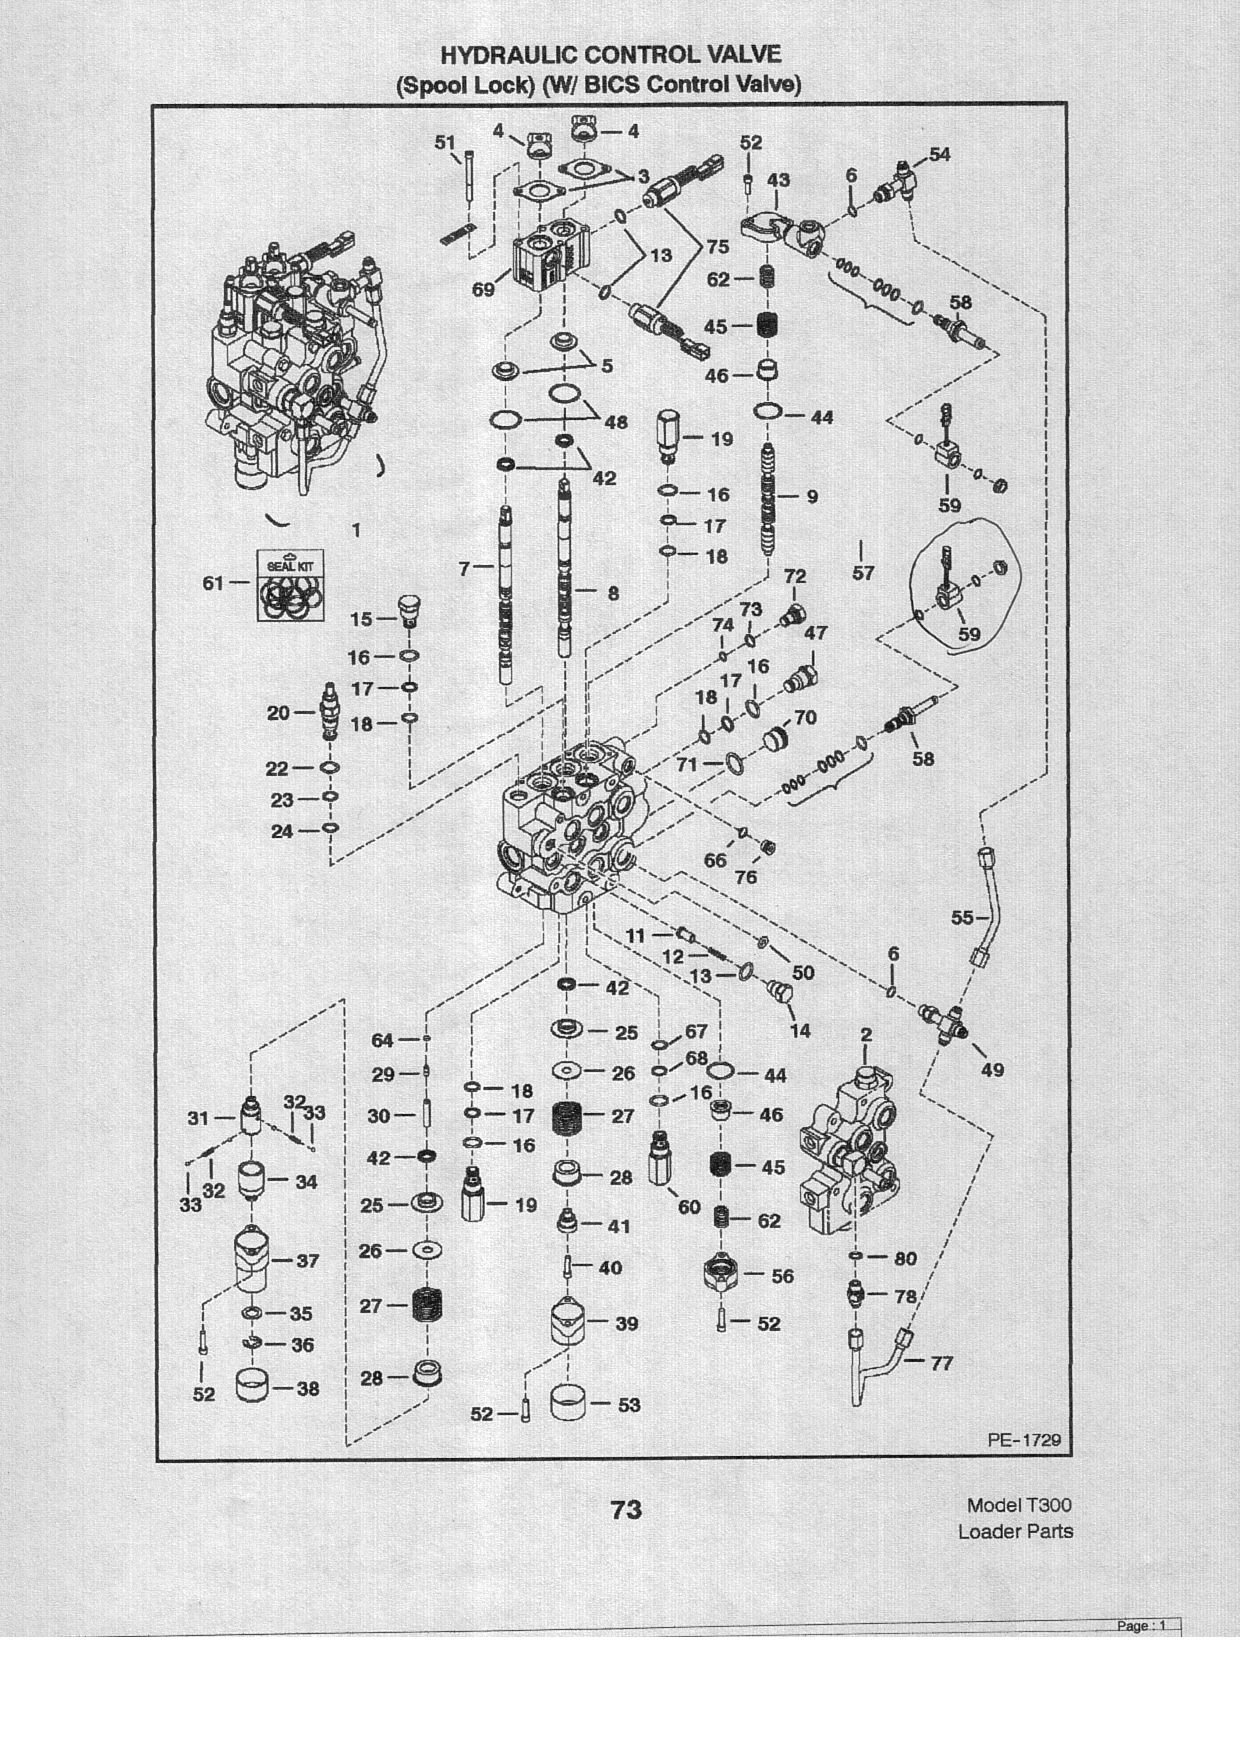 763 bobcat hydraulic schematic nb 8590  bobcat 763 hydraulic system diagram schematic wiring  bobcat 763 hydraulic system diagram